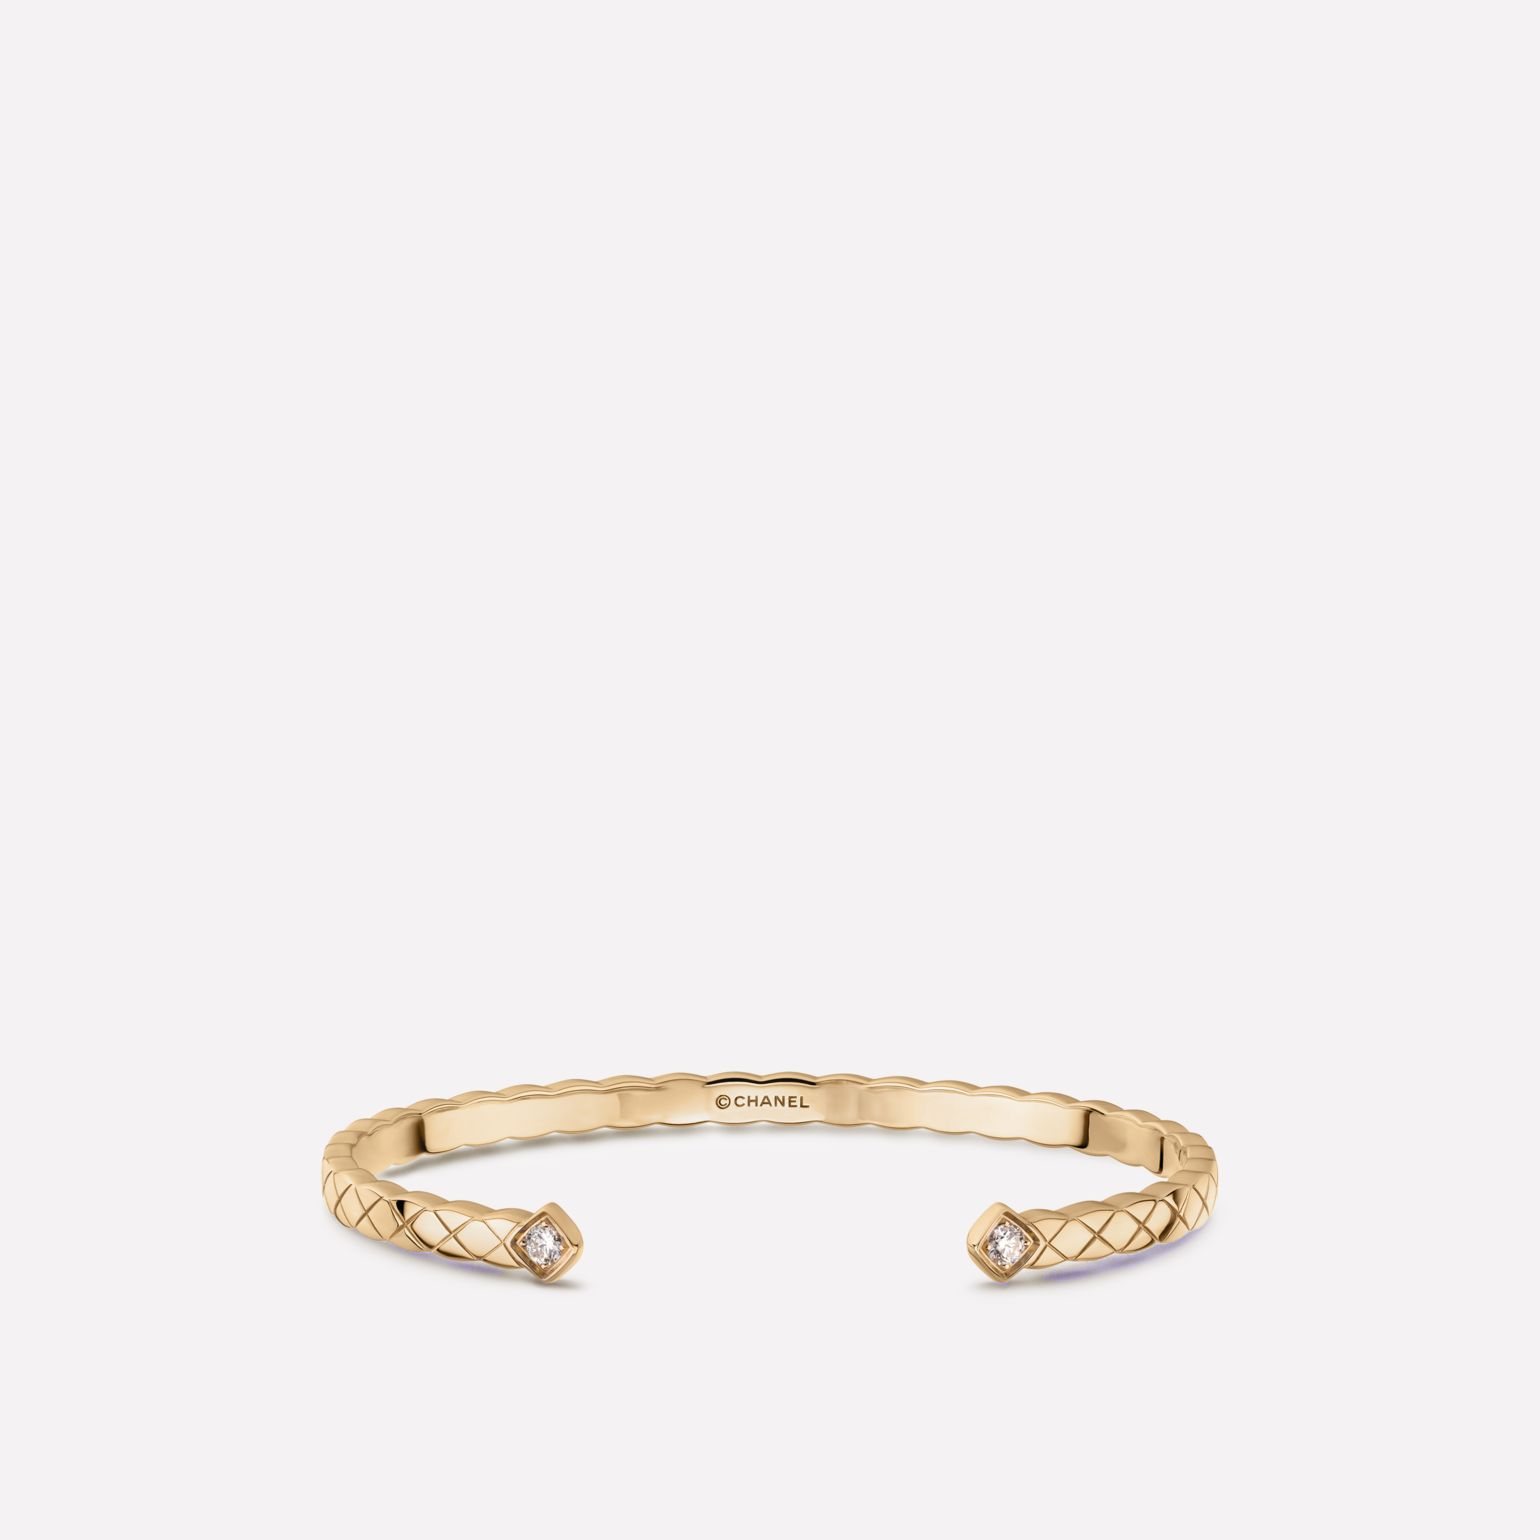 Coco Crush bracelet Quilted motif bangle in 18K BEIGE GOLD and diamonds